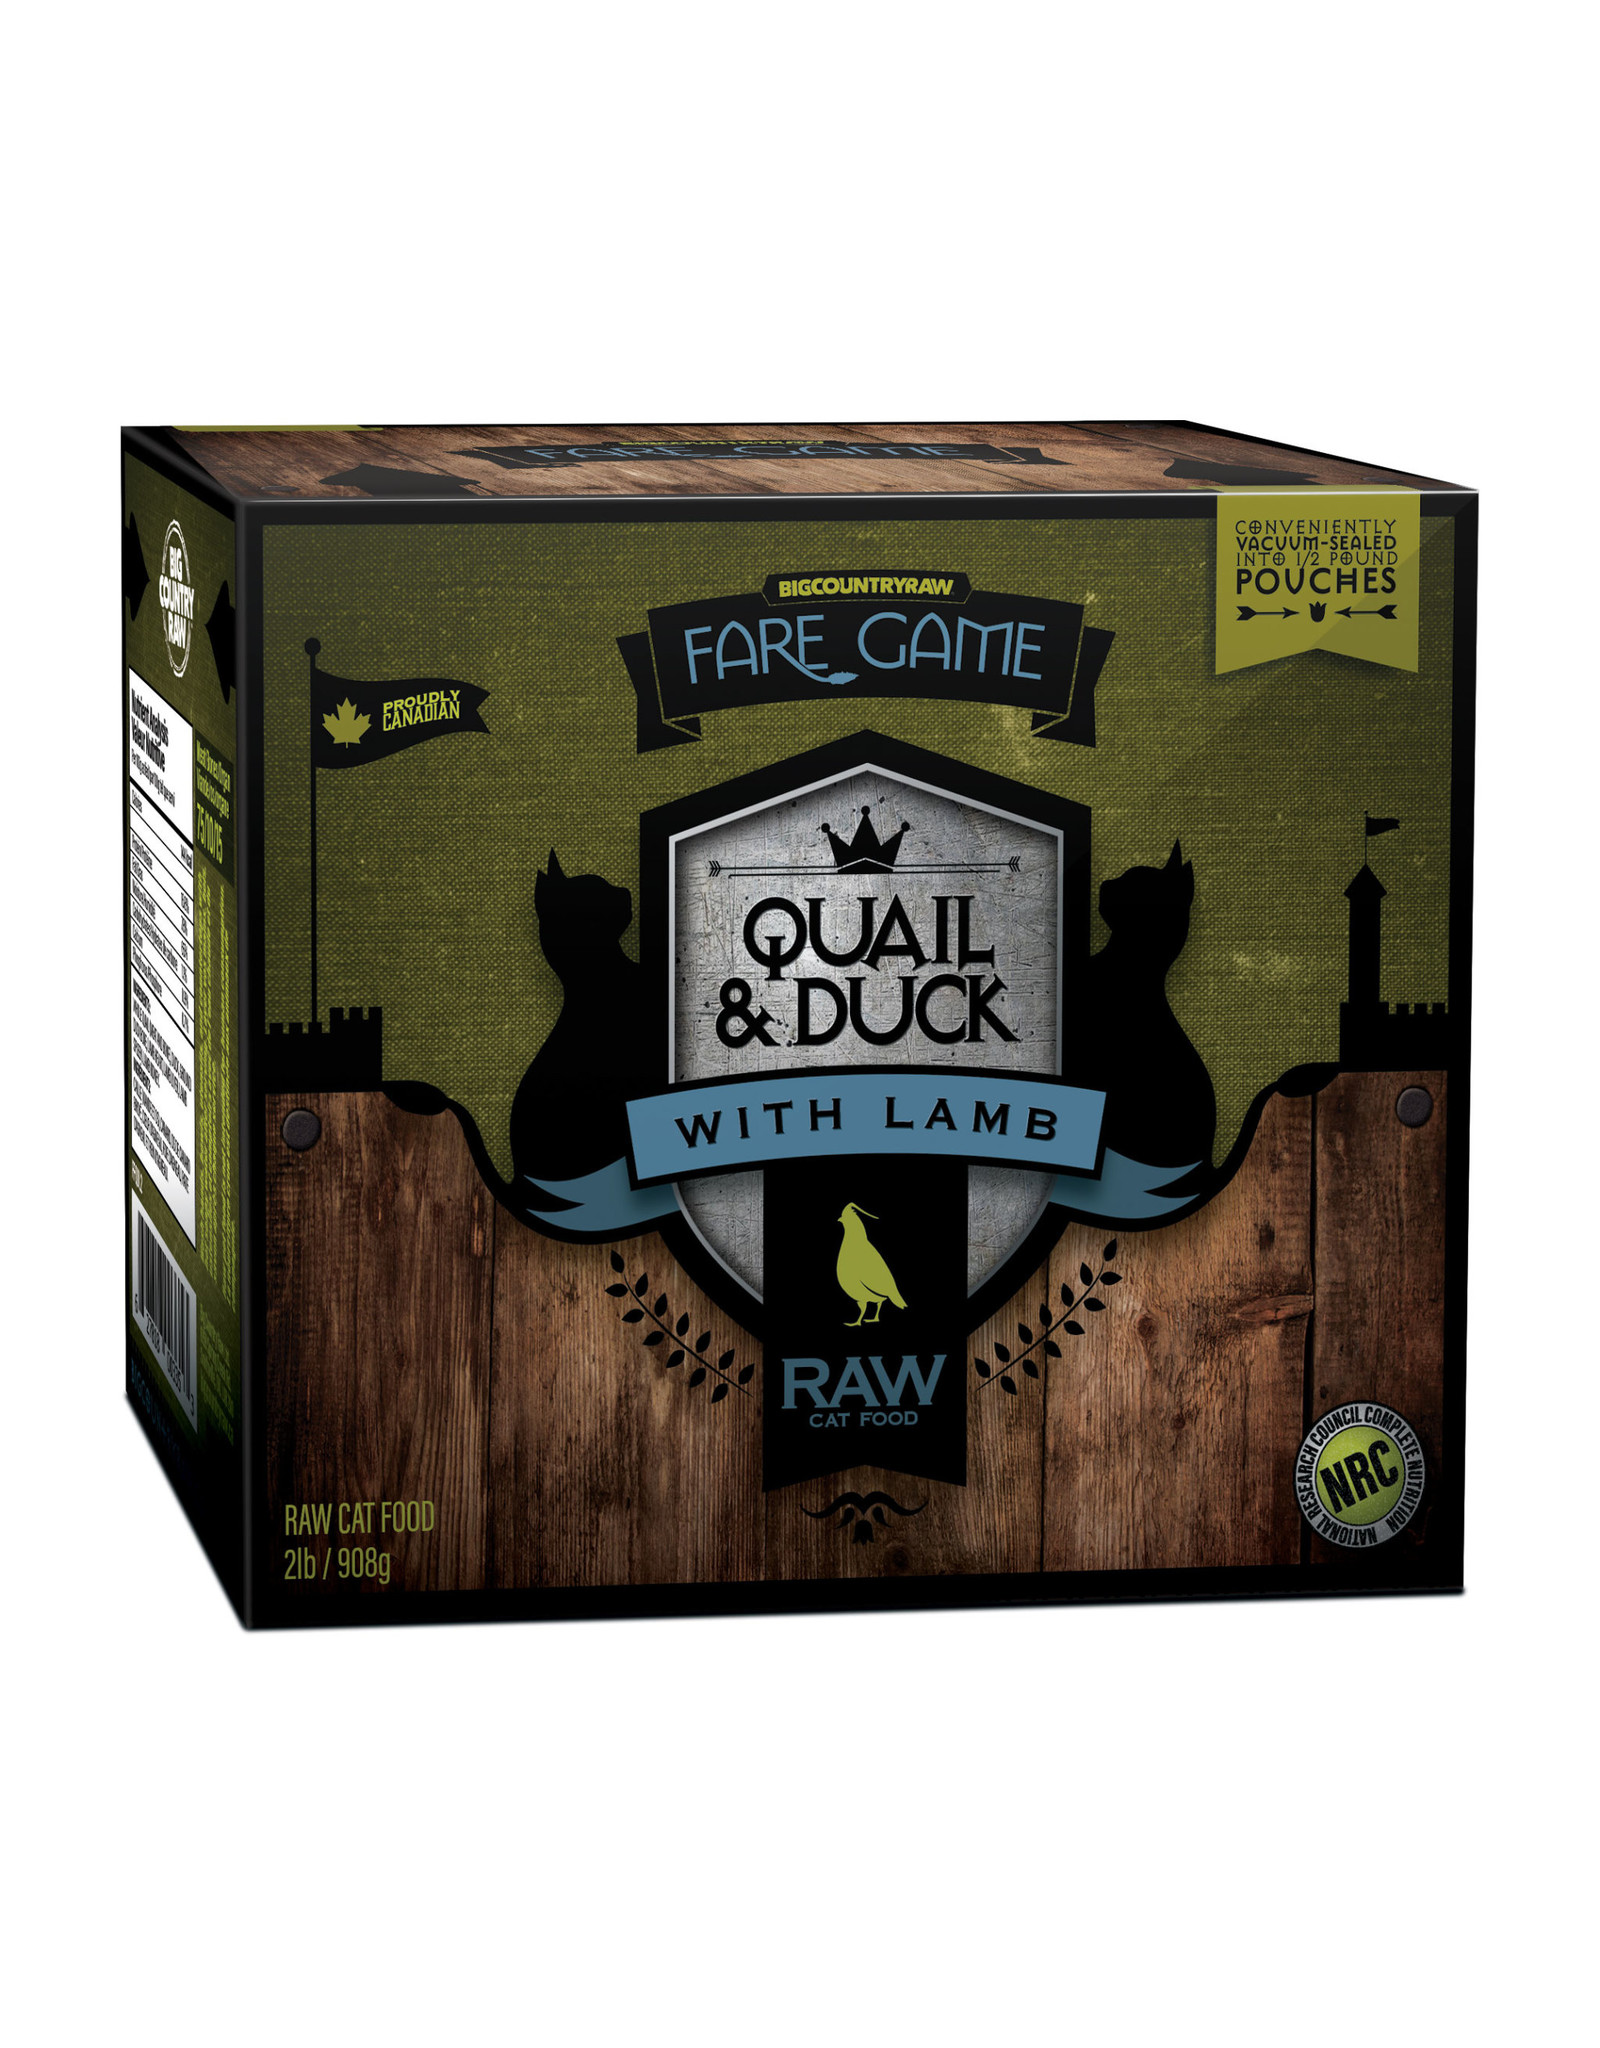 Big Country Raw Fare Game Duck and Quail with Lamb 2lb